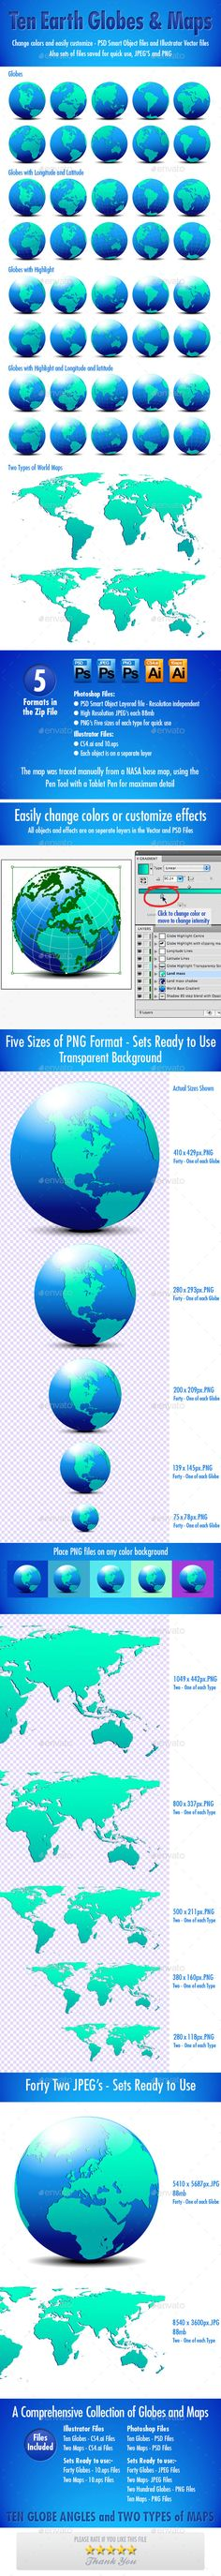 World globe map globe icon illustrations and font logo globes and world maps collection gumiabroncs Choice Image